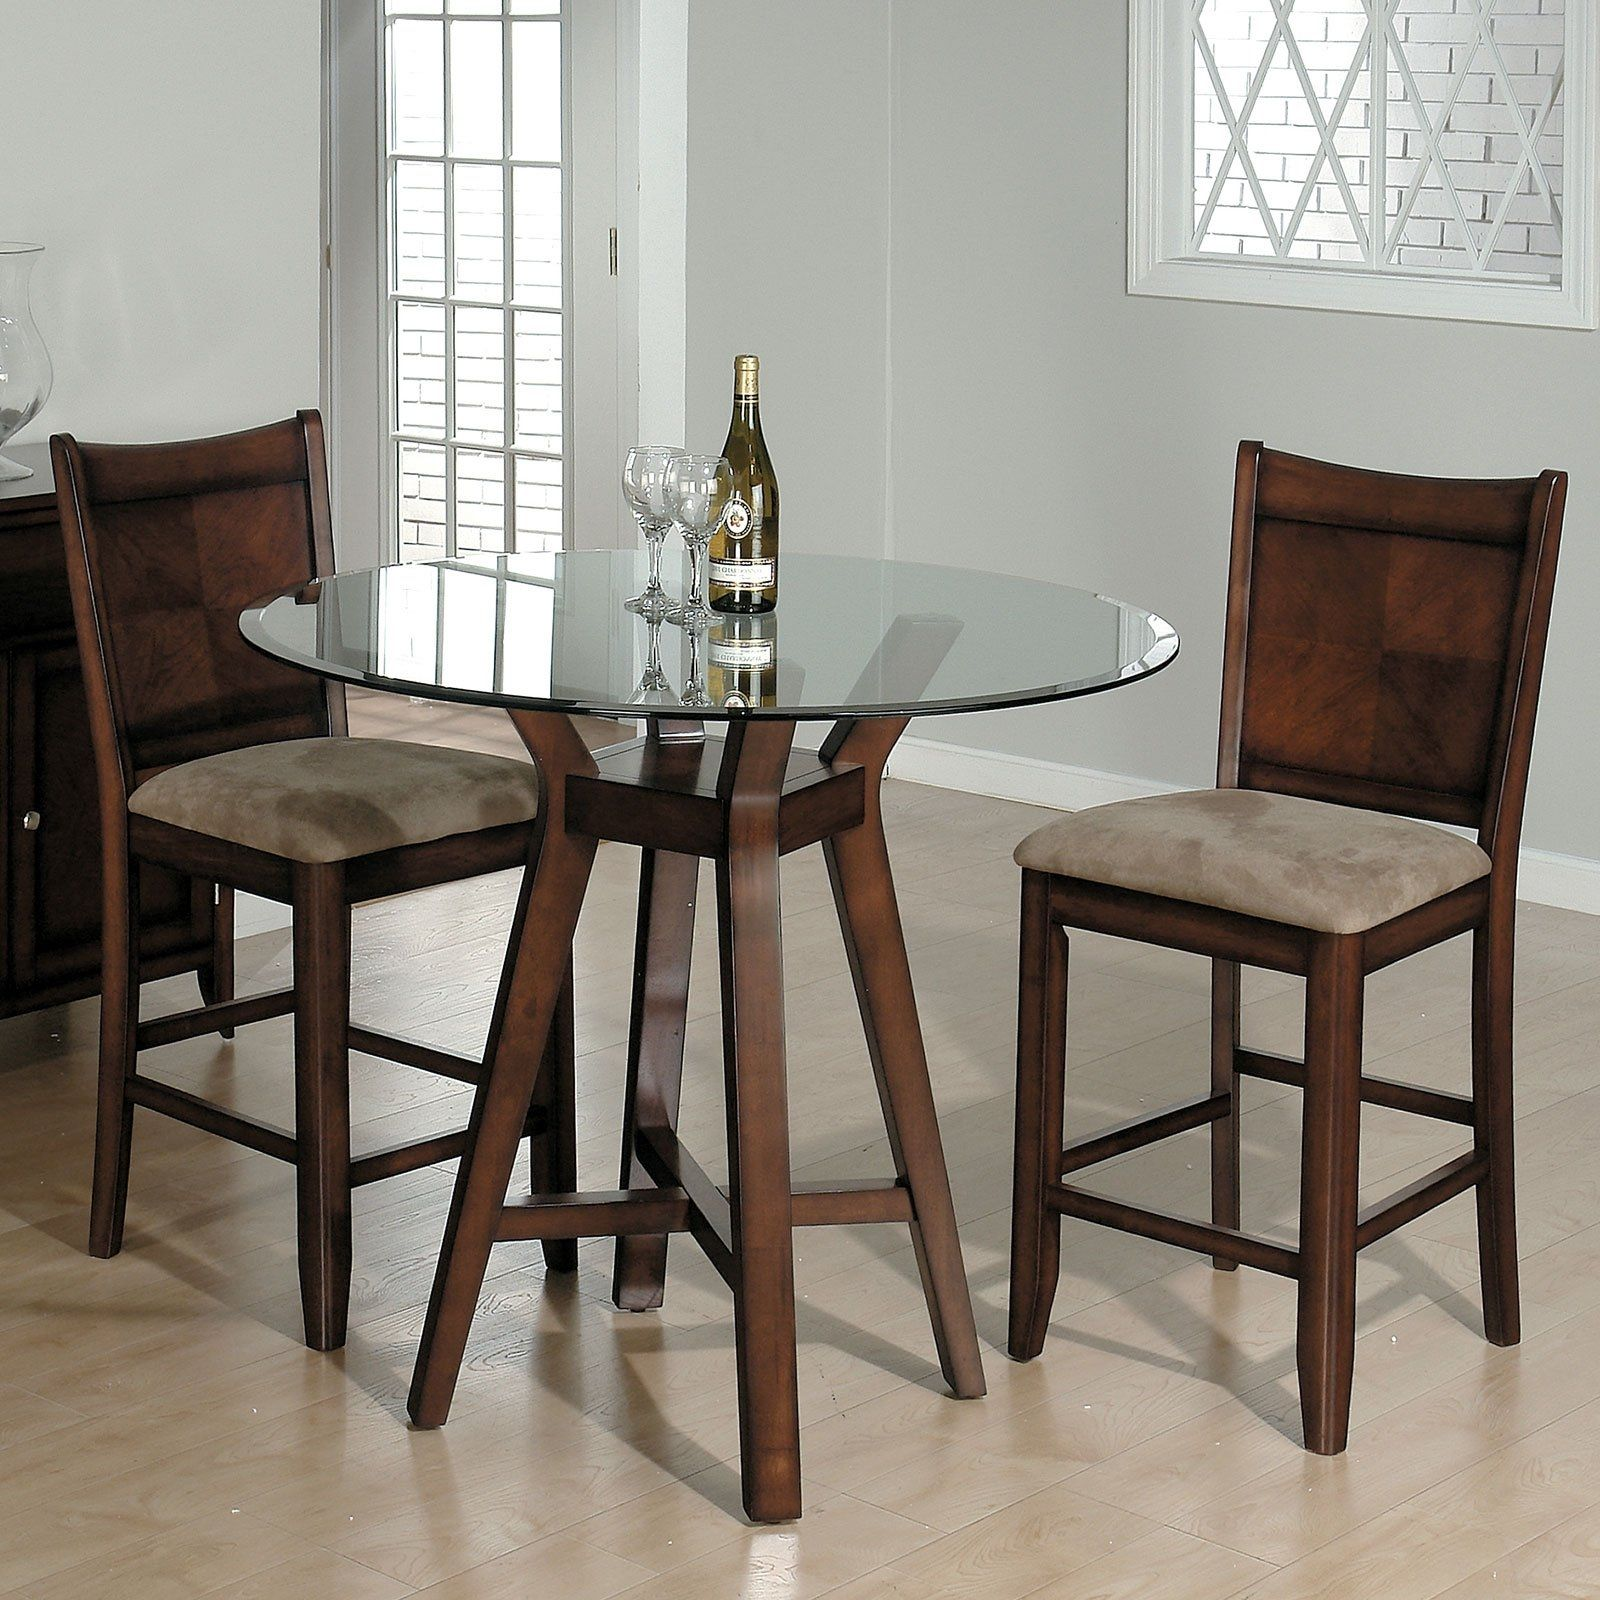 pub style kitchen set tables with bench and chairs sets ideas pinterest